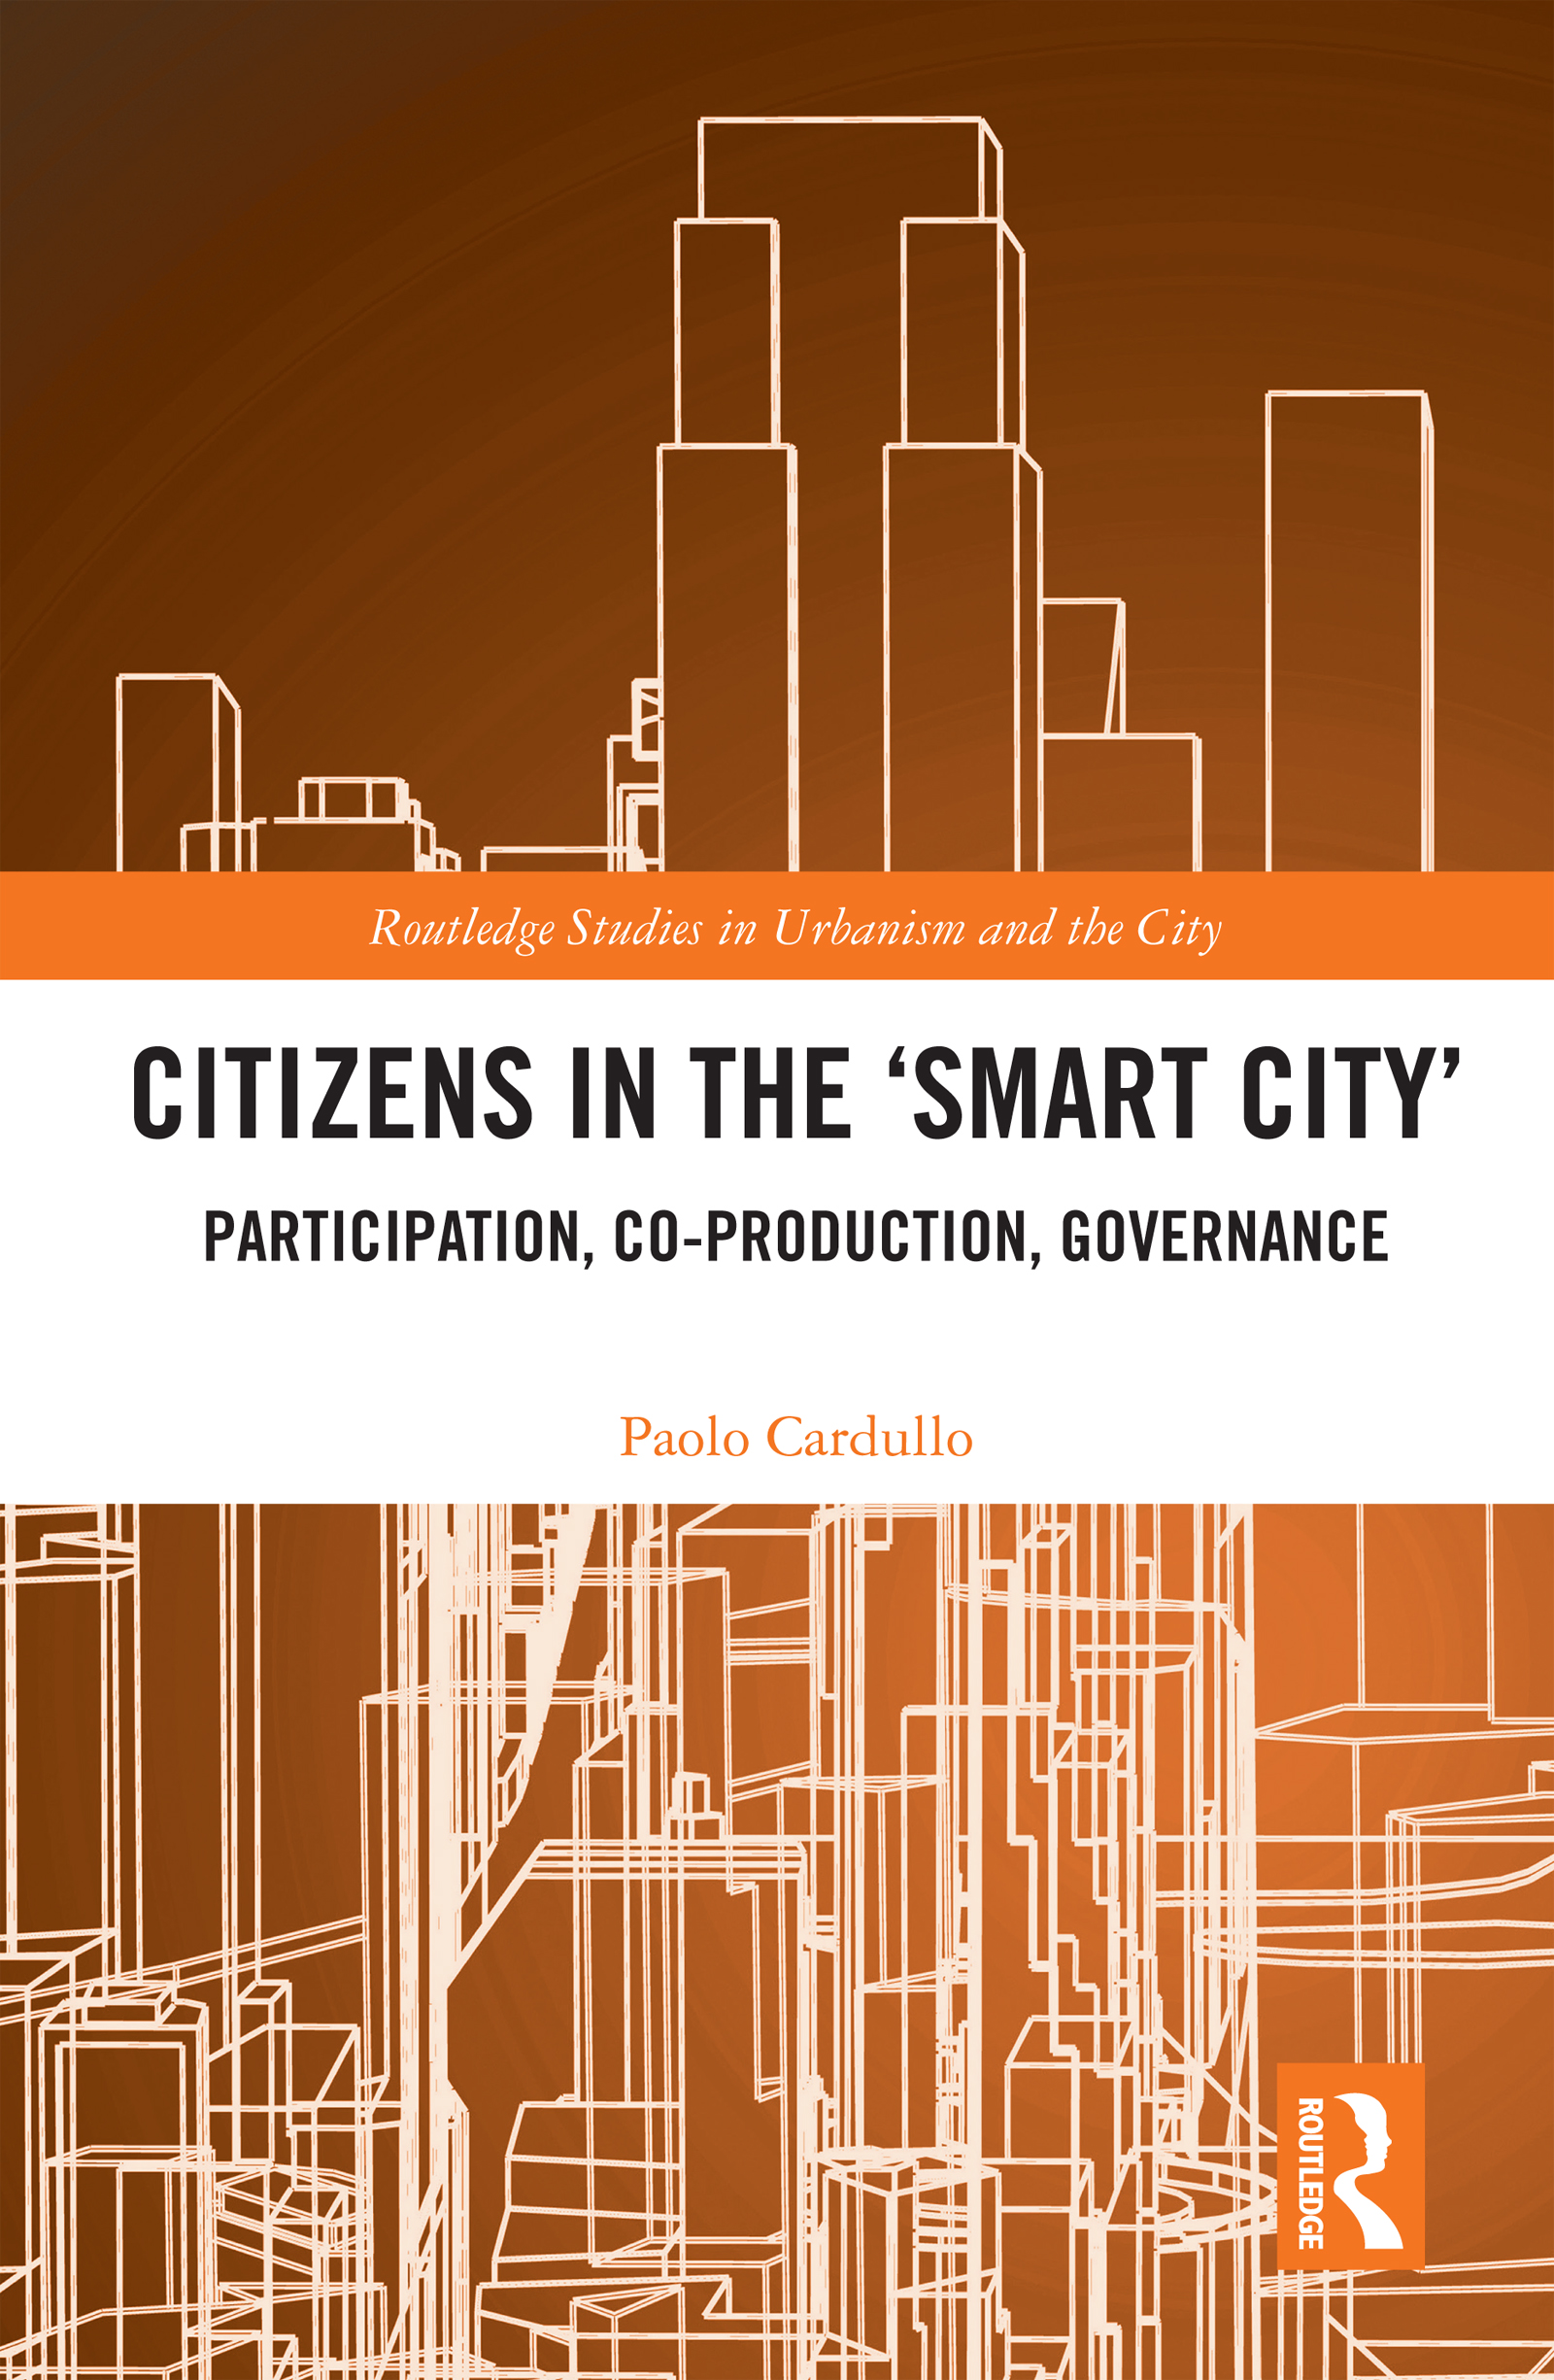 Citizens in the 'Smart City'